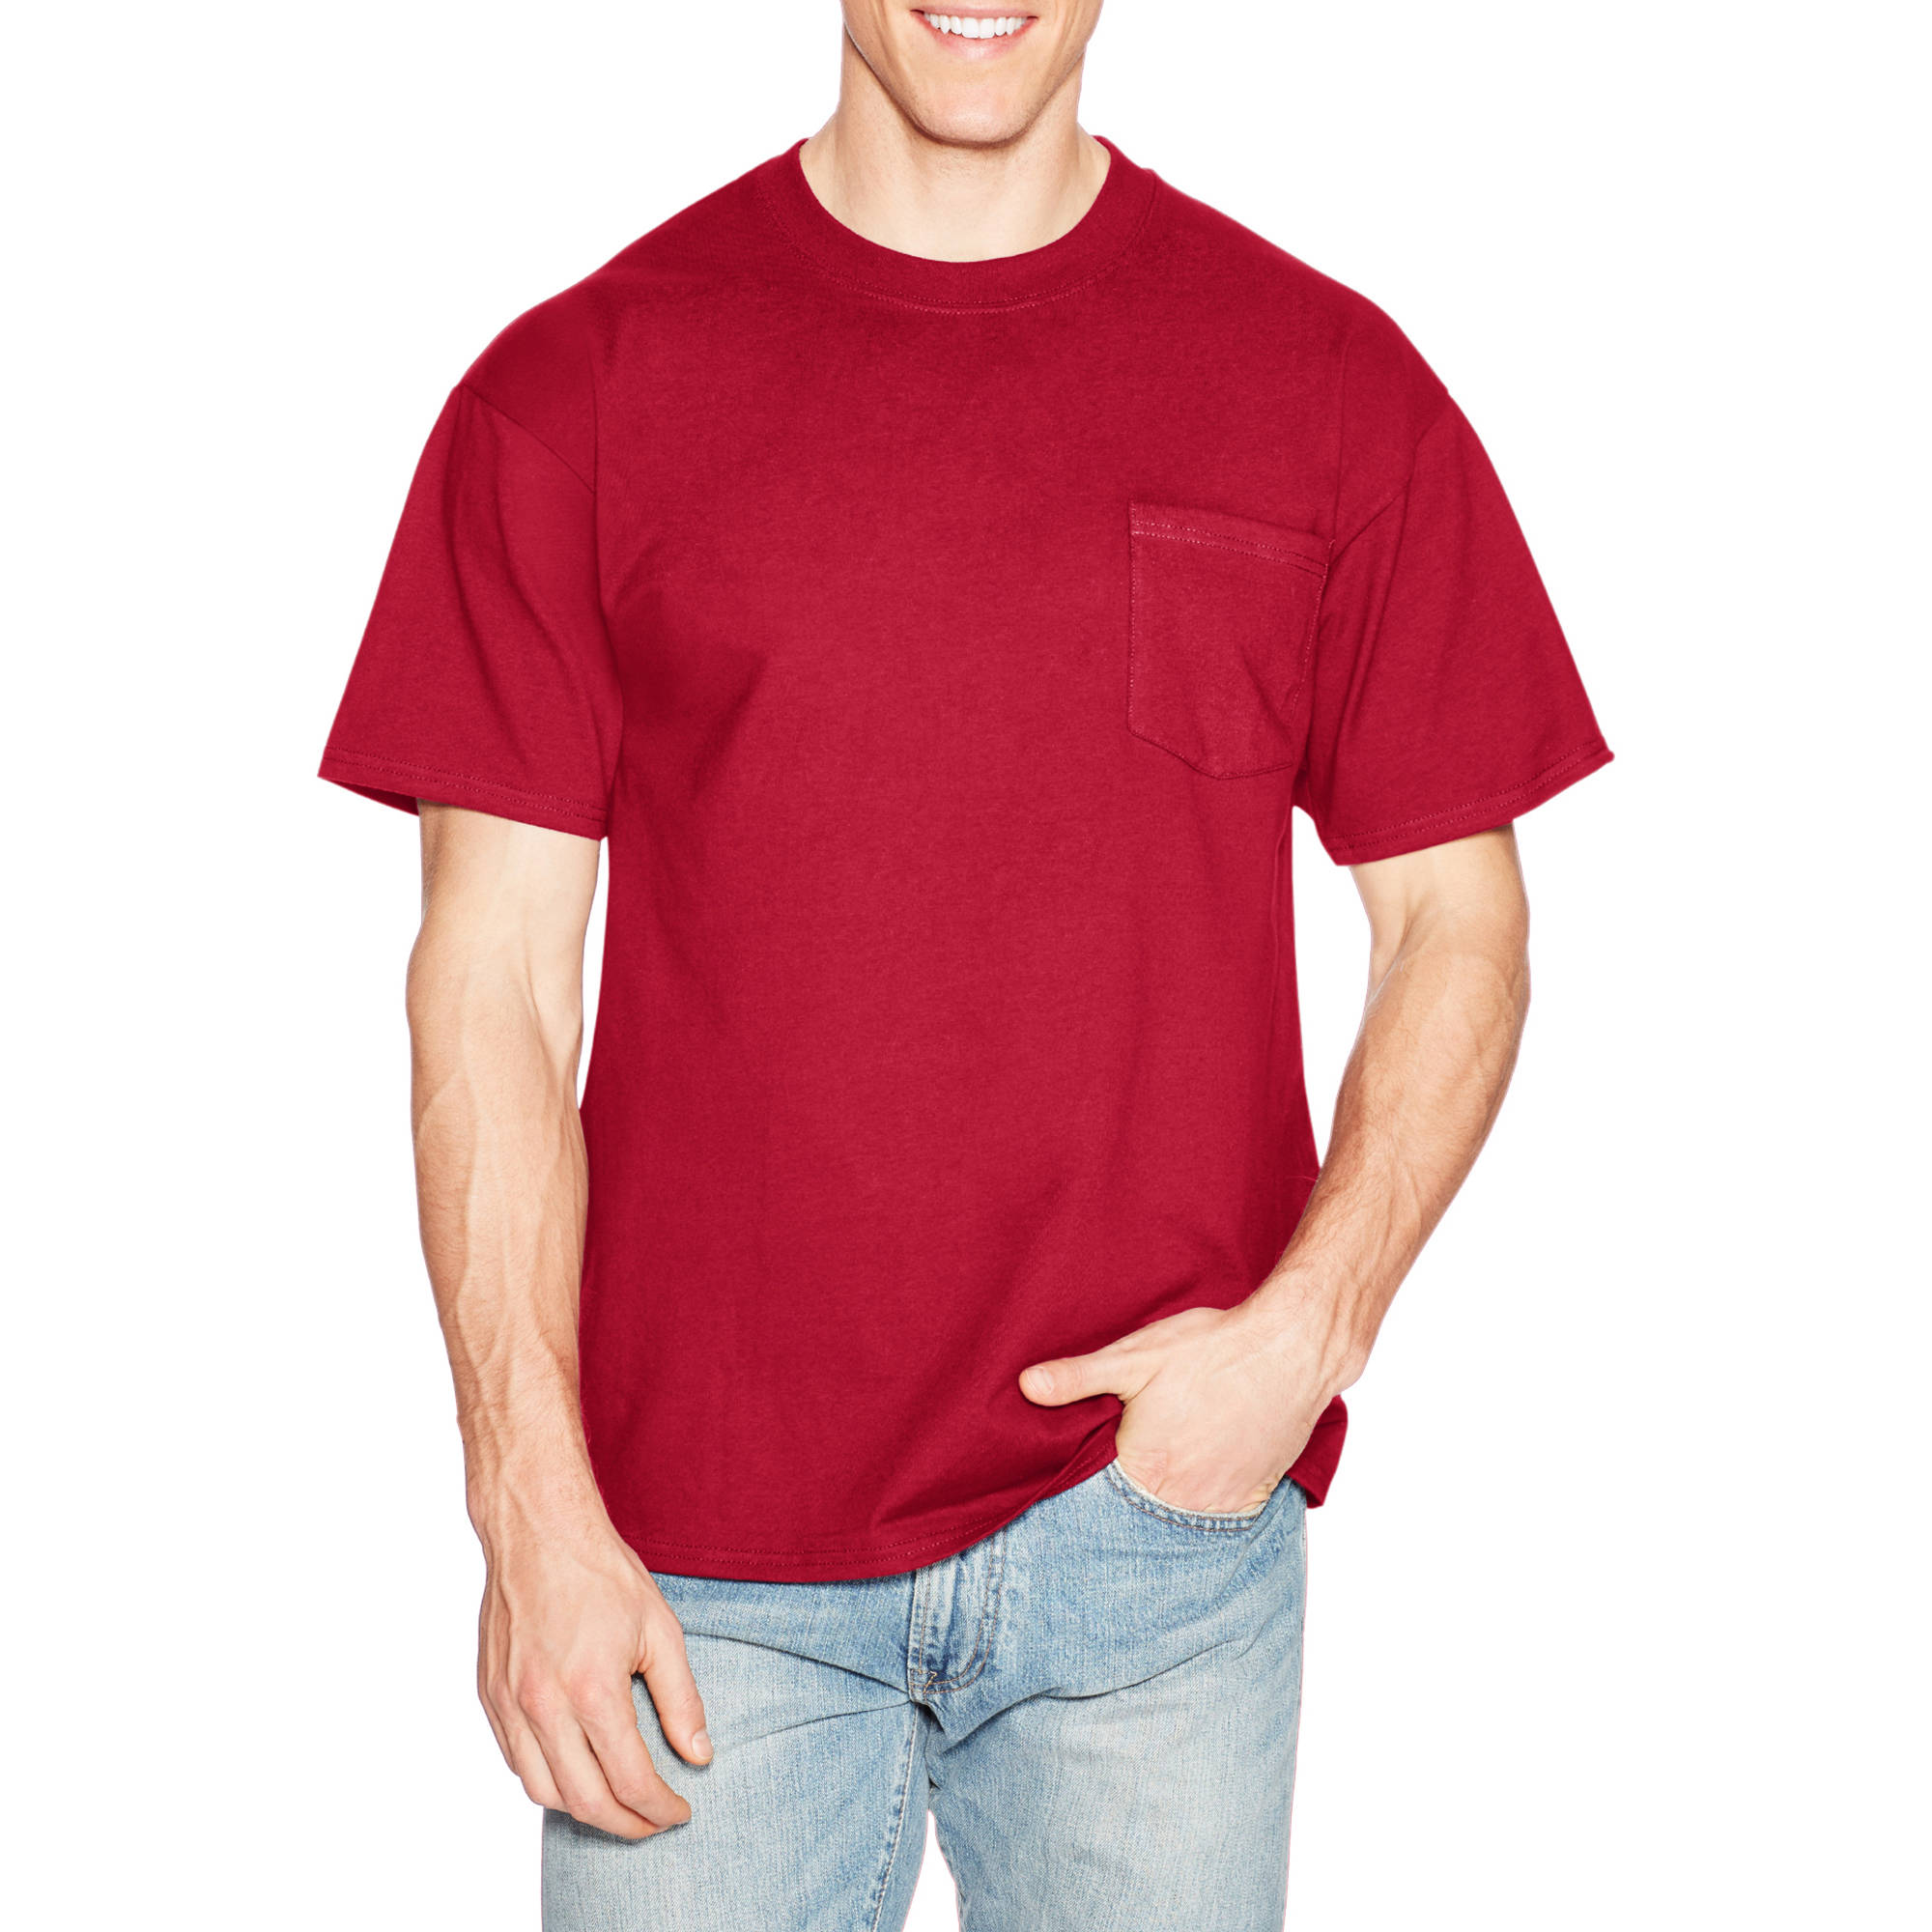 Hanes Men's Premium Beefy-T Cotton Short Sleeve T-Shirt with ...